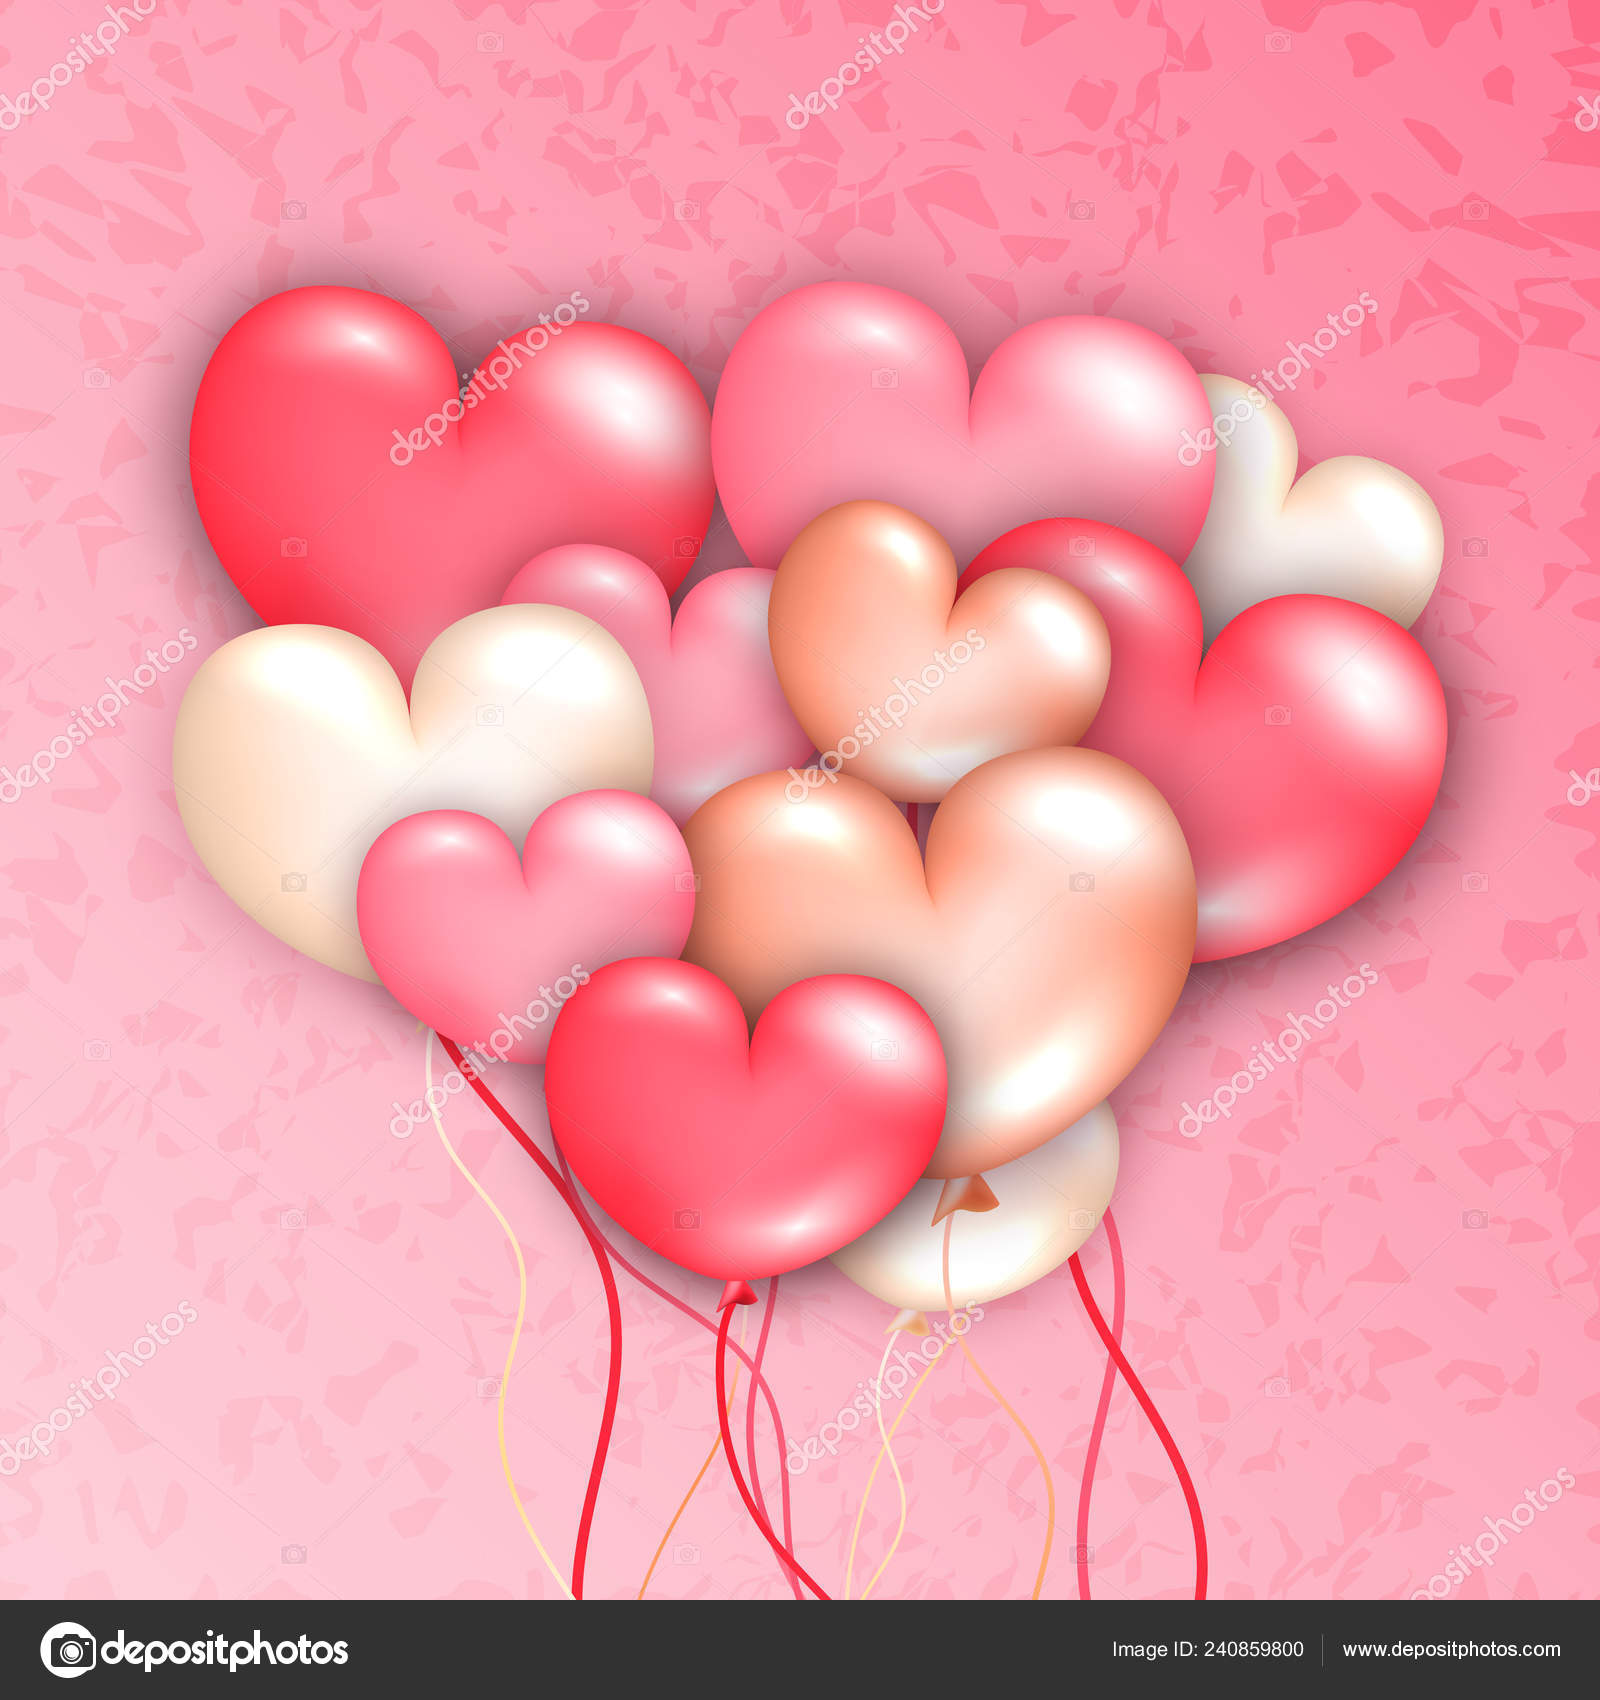 Pink Love Heart Party Balloons Modern Trendy Flyer Concept On Marble Background Greeting Card Mockup Banner Design Web Online Cover Page Poster Brochure Template Stock Vector C Stacy T 240859800